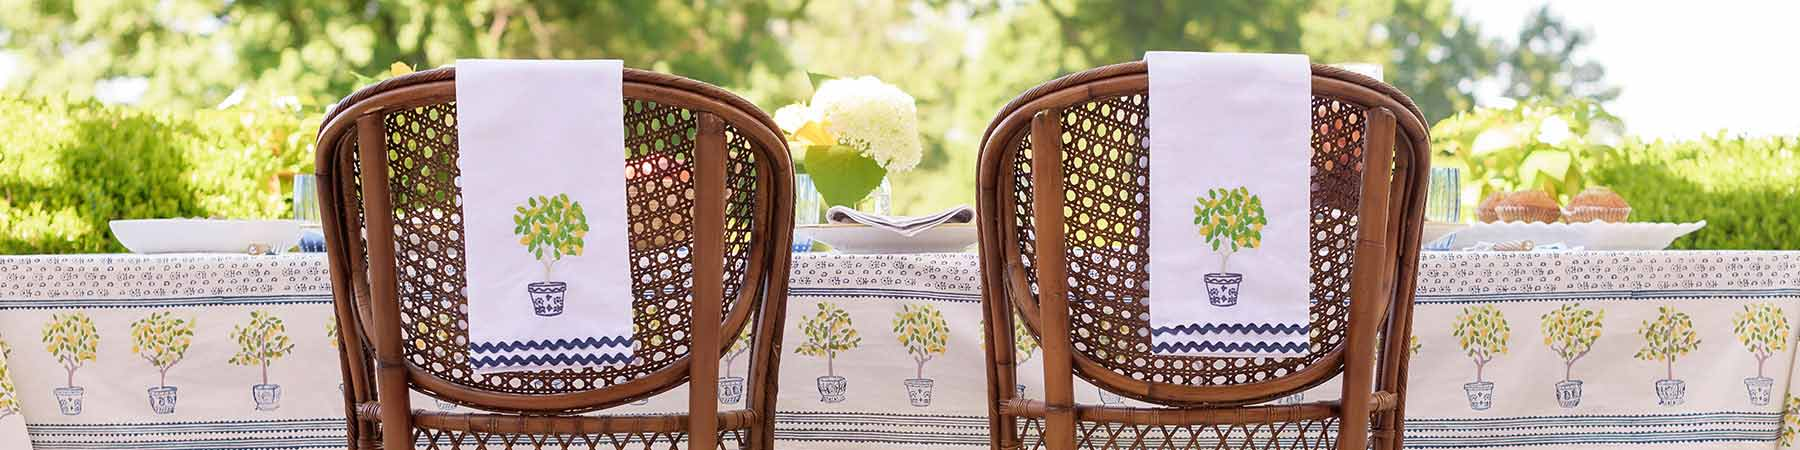 Embroidered Tea Towel Collection Banner